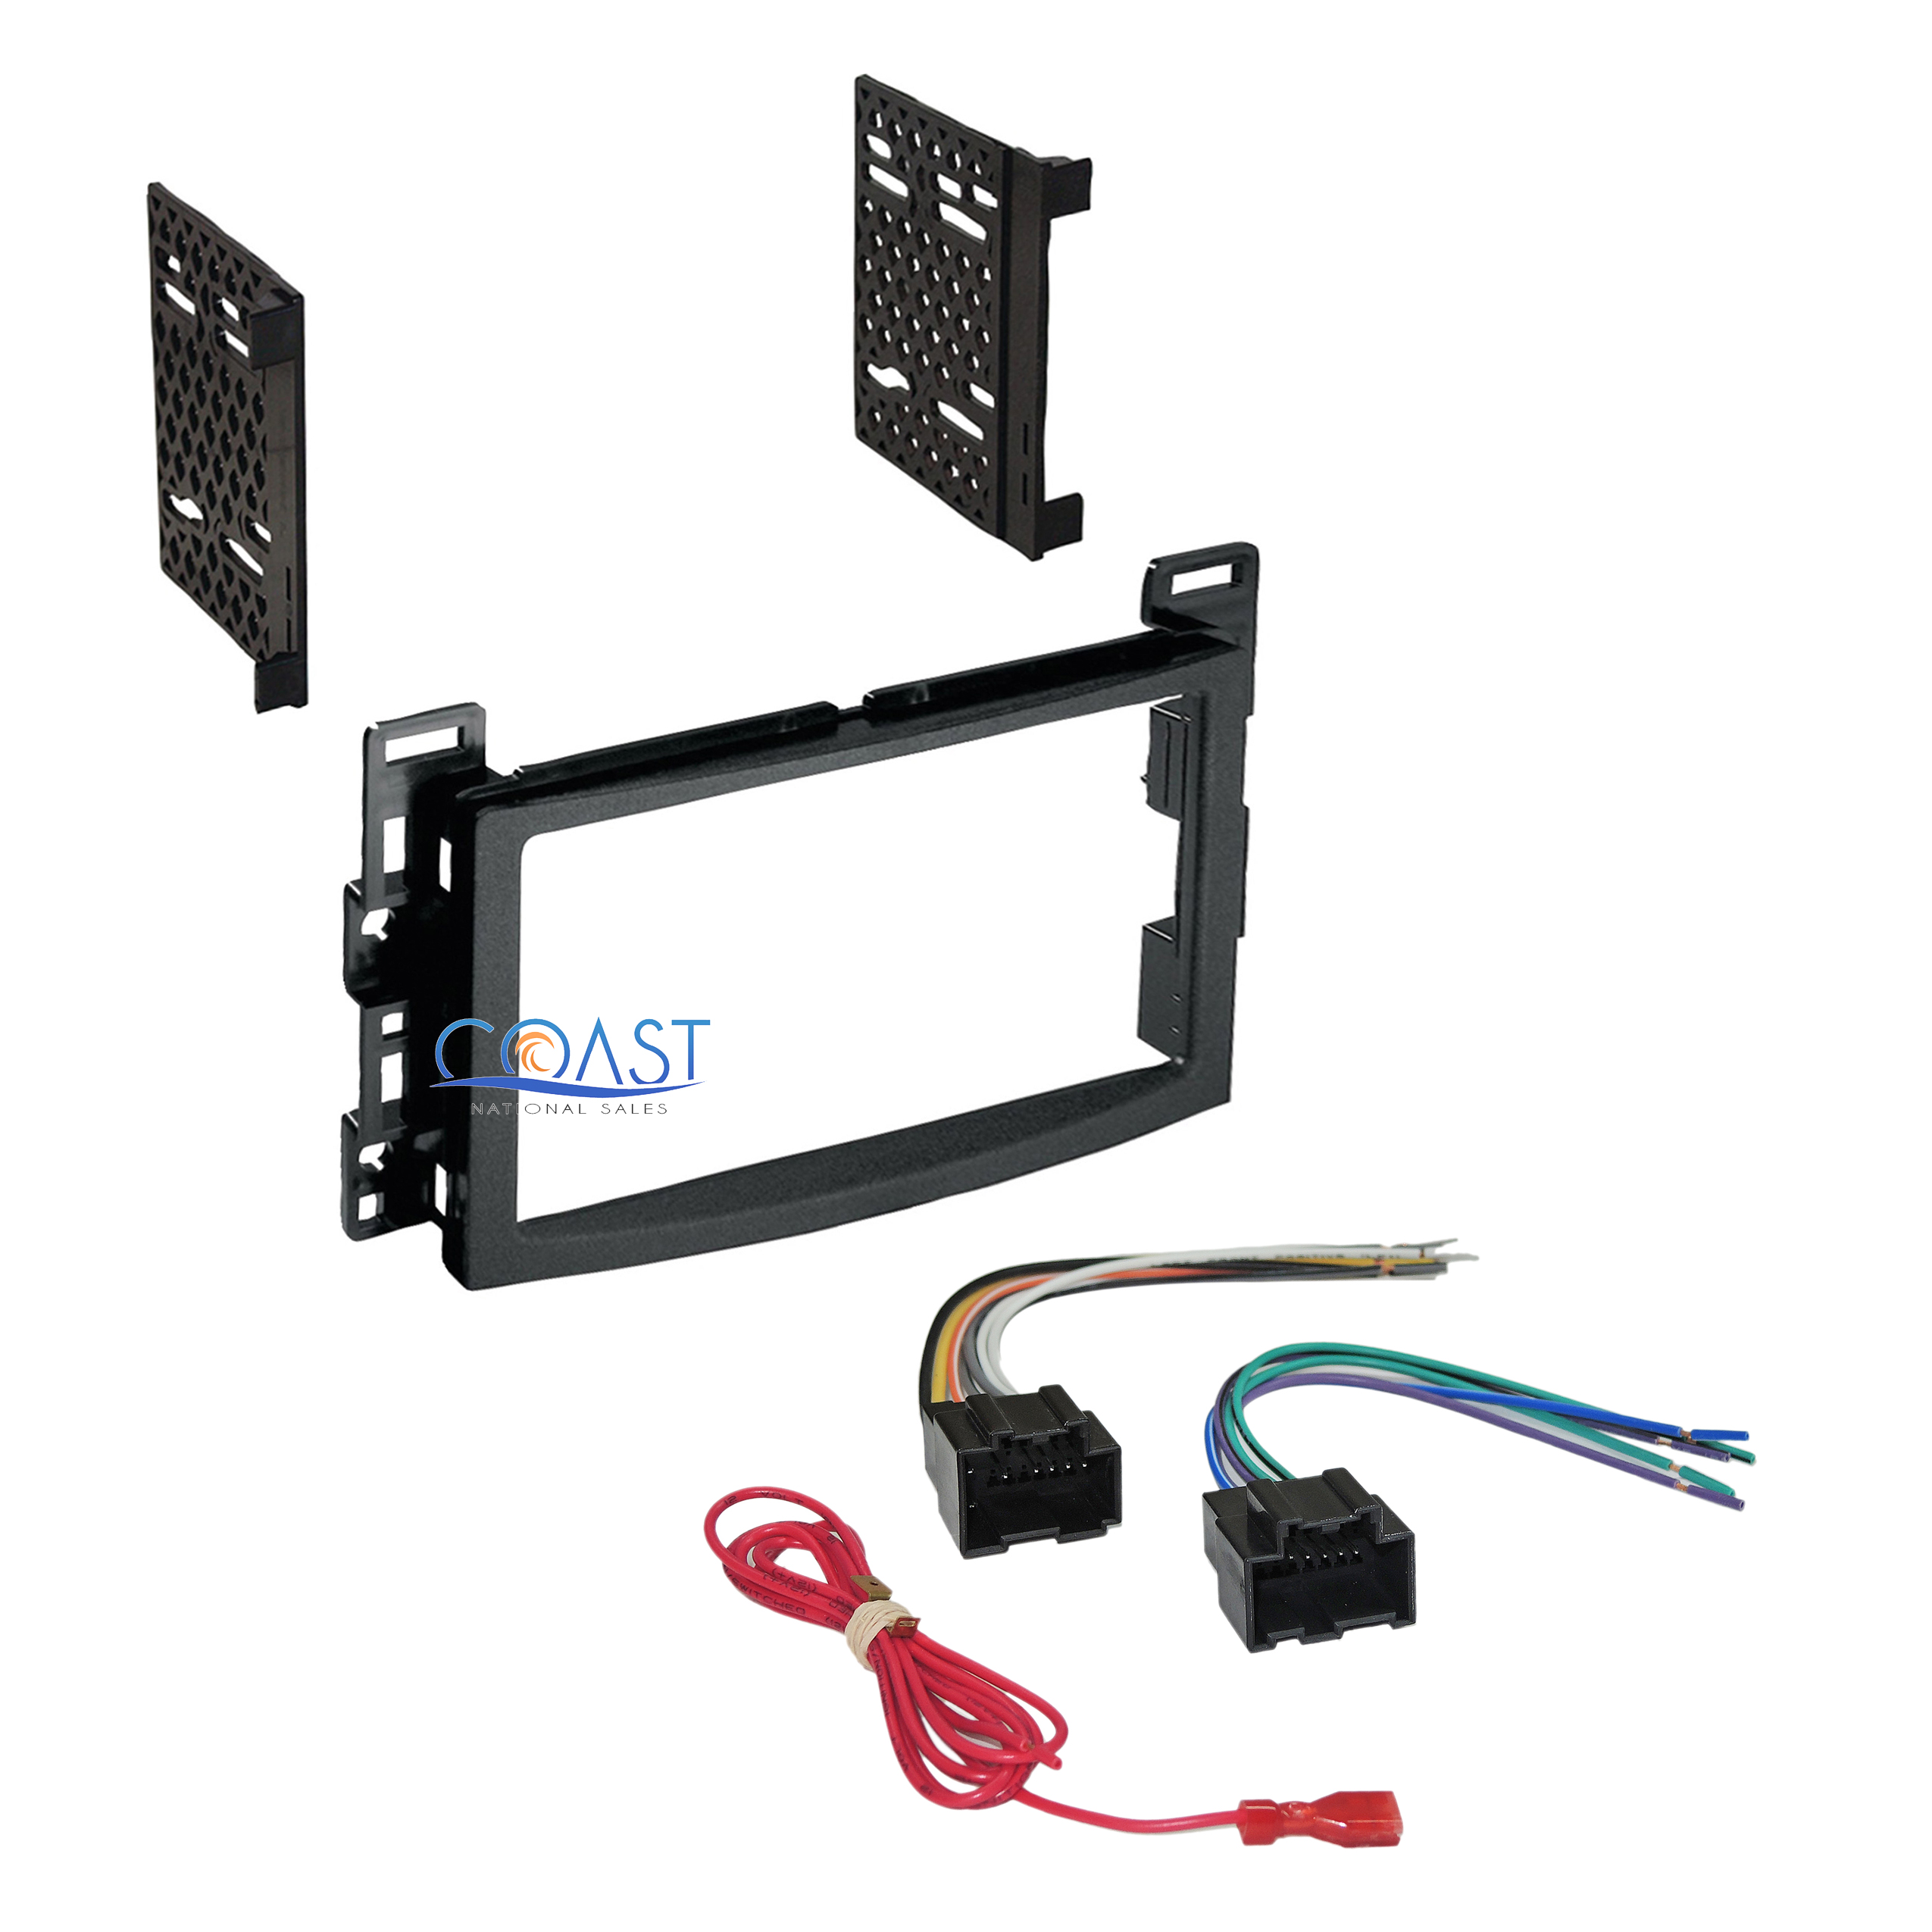 Metra 70 2104 Radio Wiring Harness For 06 Up Gm : Car radio stereo ddin dash kit wire harness for